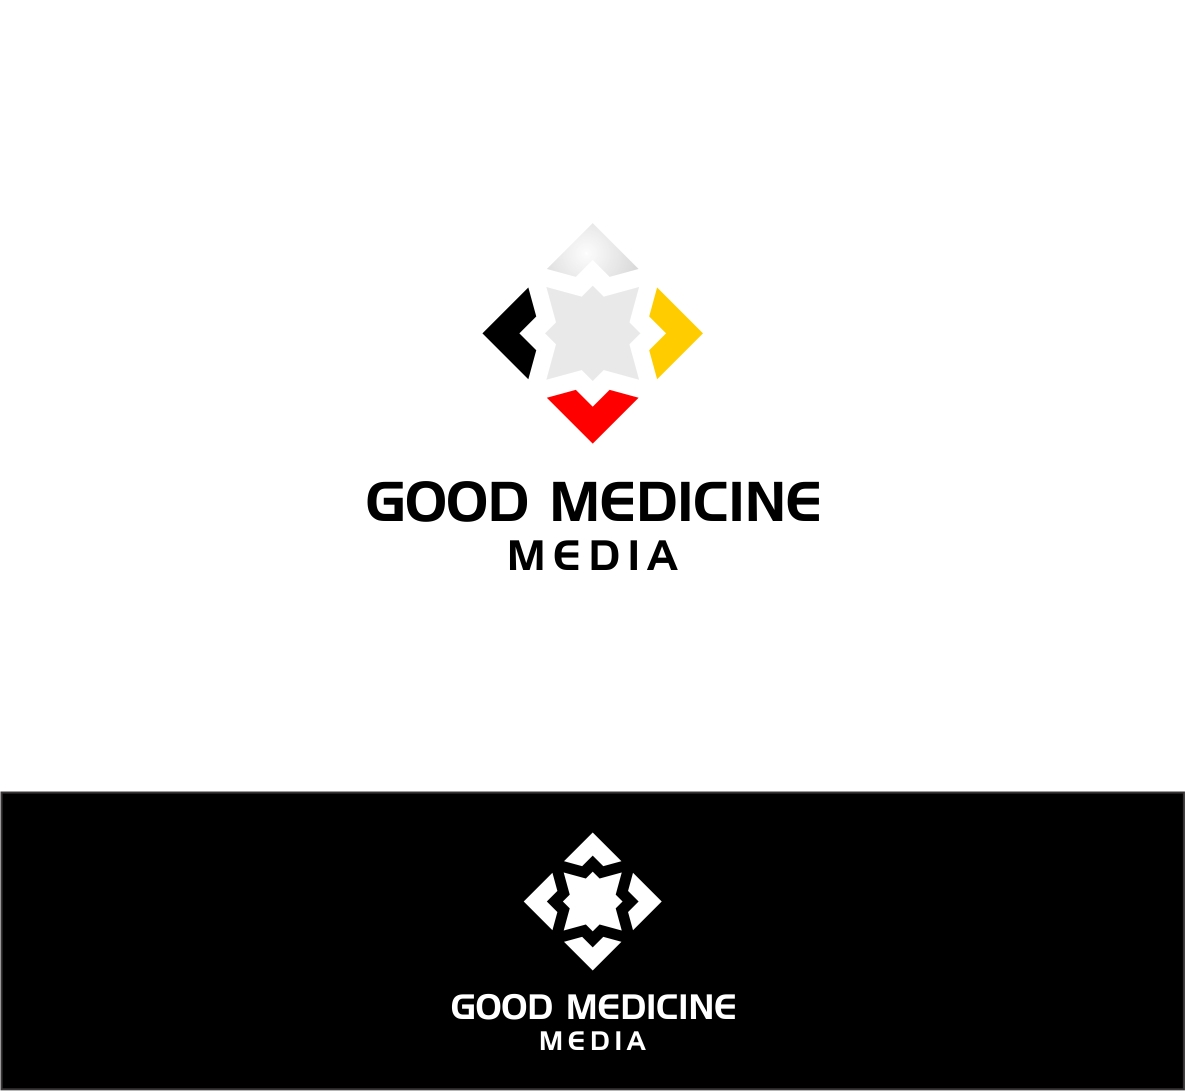 Logo Design by haidu - Entry No. 205 in the Logo Design Contest Good Medicine Media Logo Design.